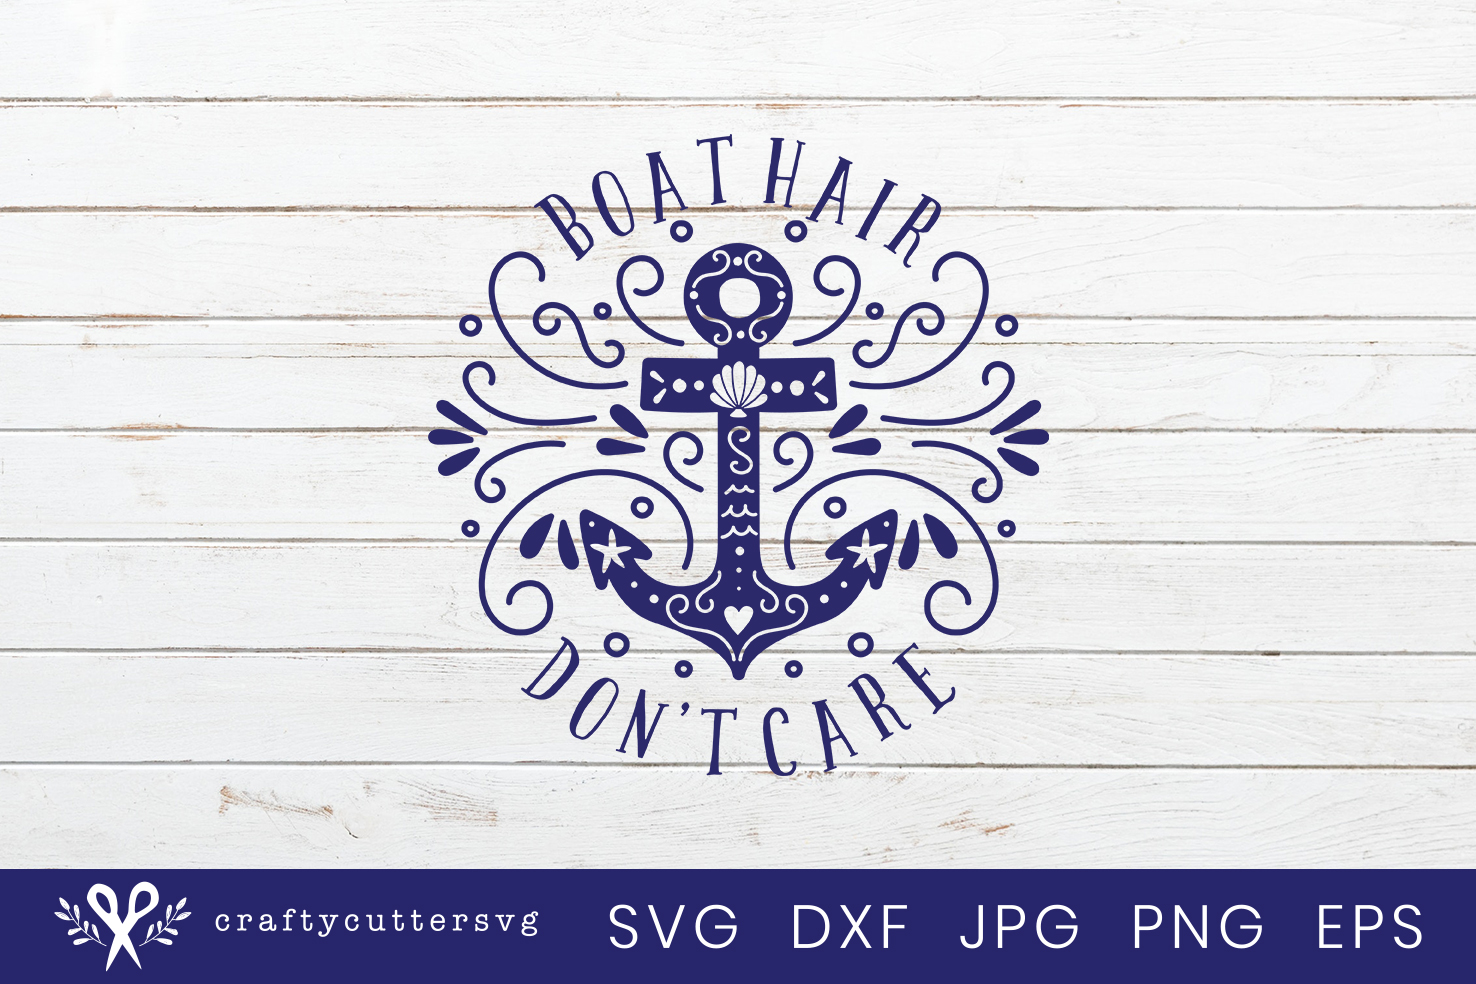 Boat hair don't care Svg Cut File Anchor Clipart example image 2